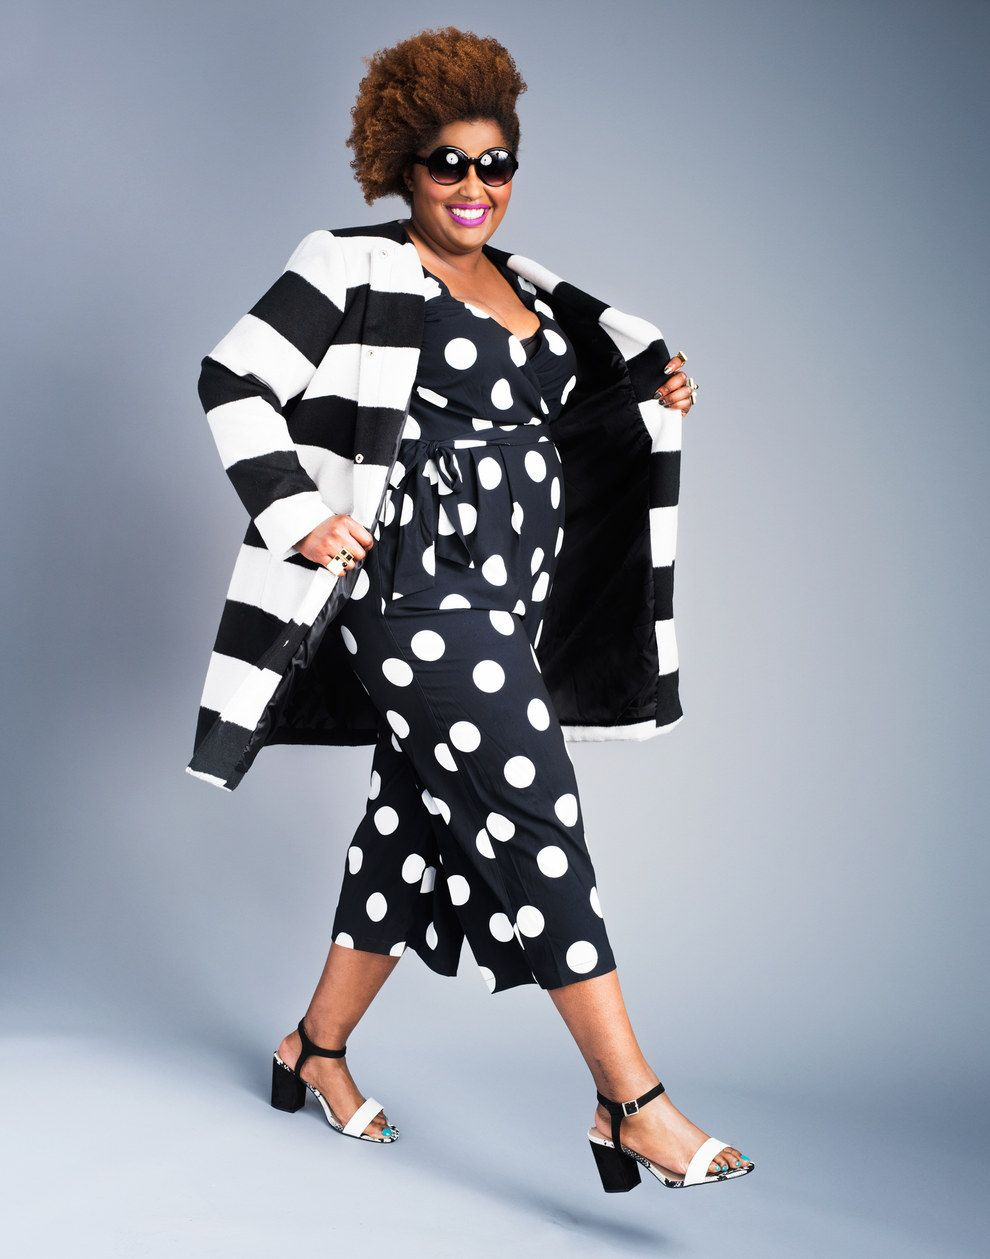 This woman proves plussize fashion